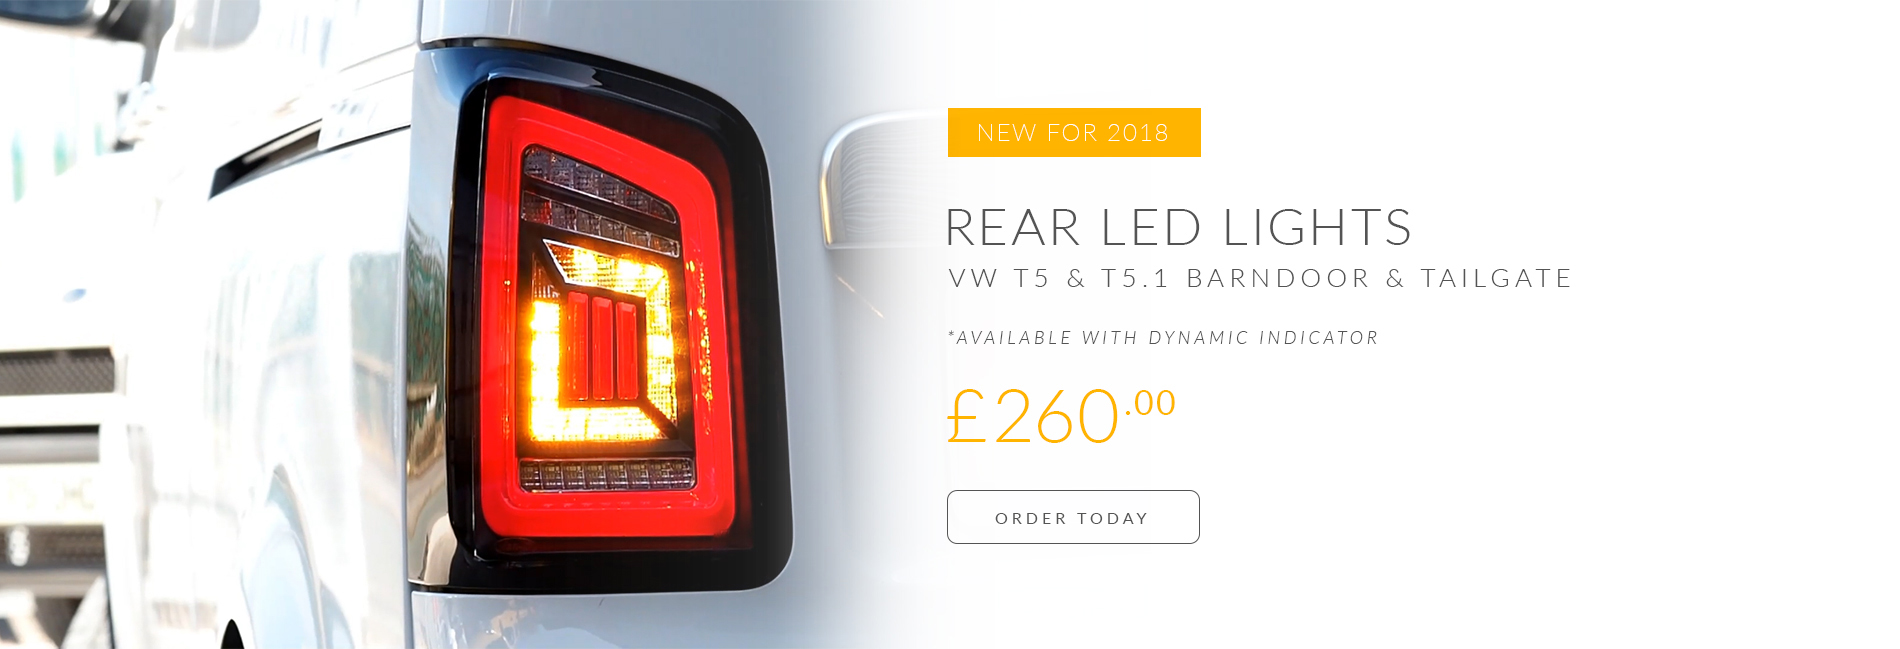 BRAND NEW: VW T5 & T5.1 DYNAMIC REAR LED LIGHTS